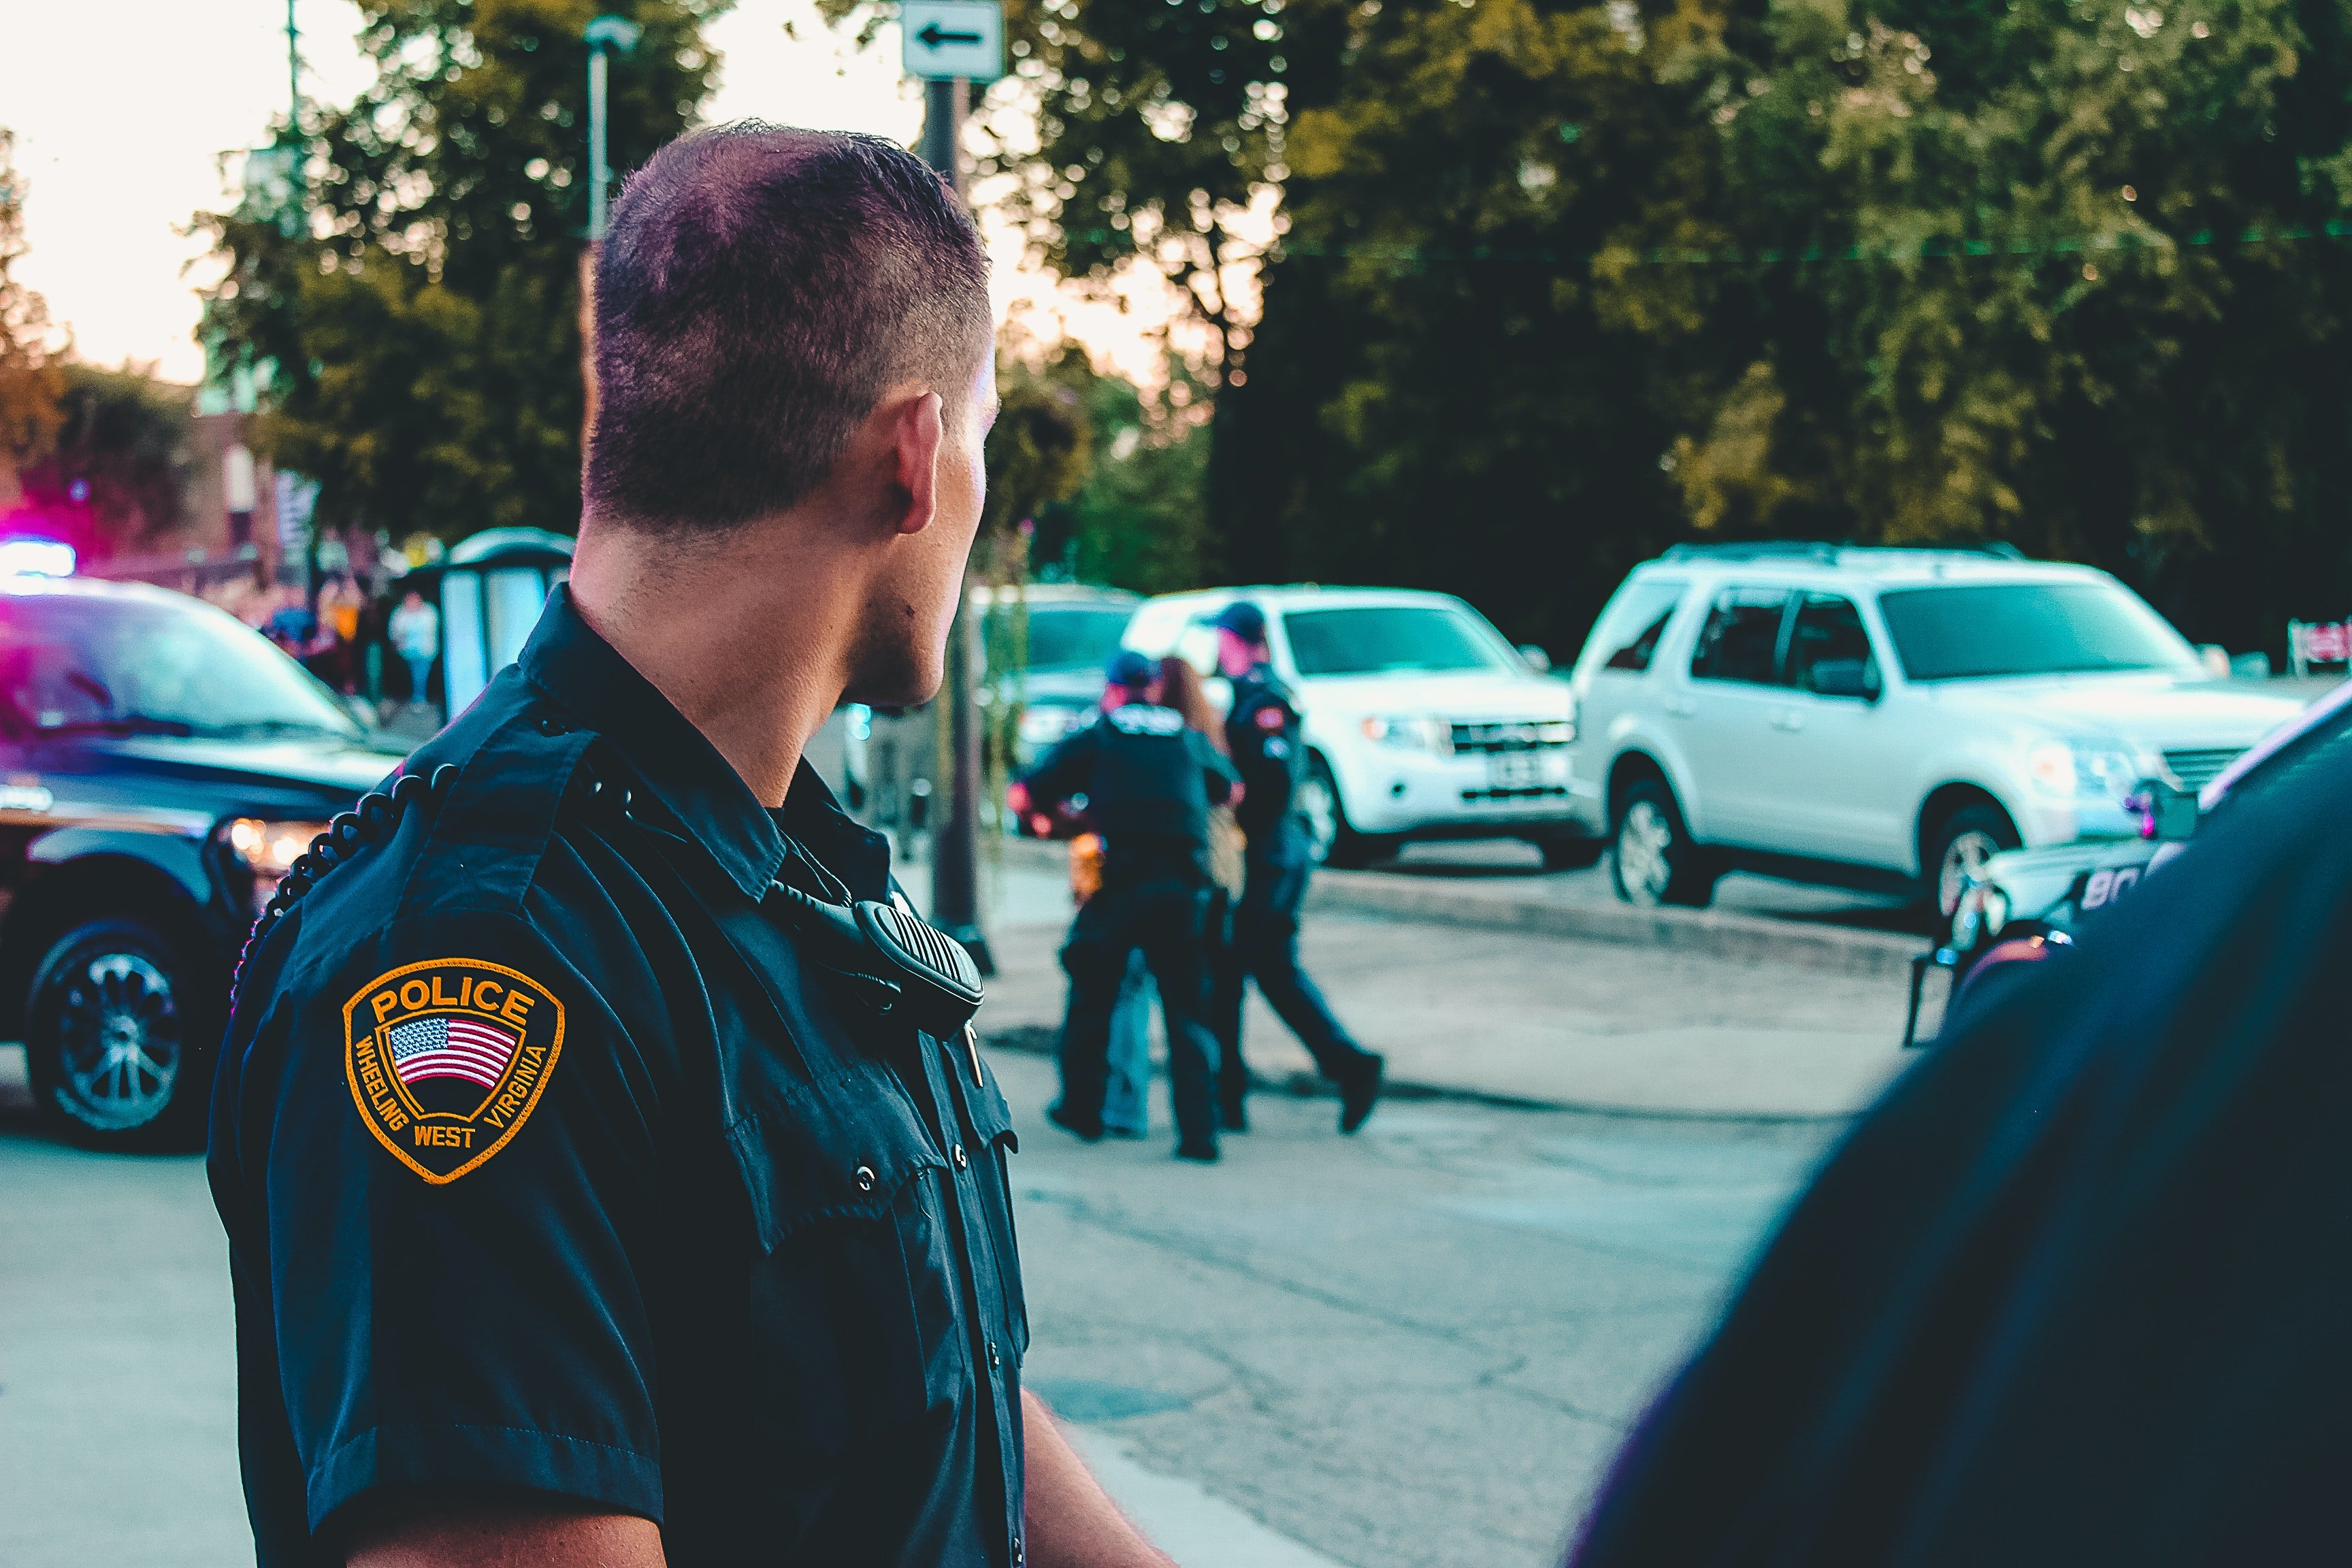 A police officer during duty | Photo: Pexels